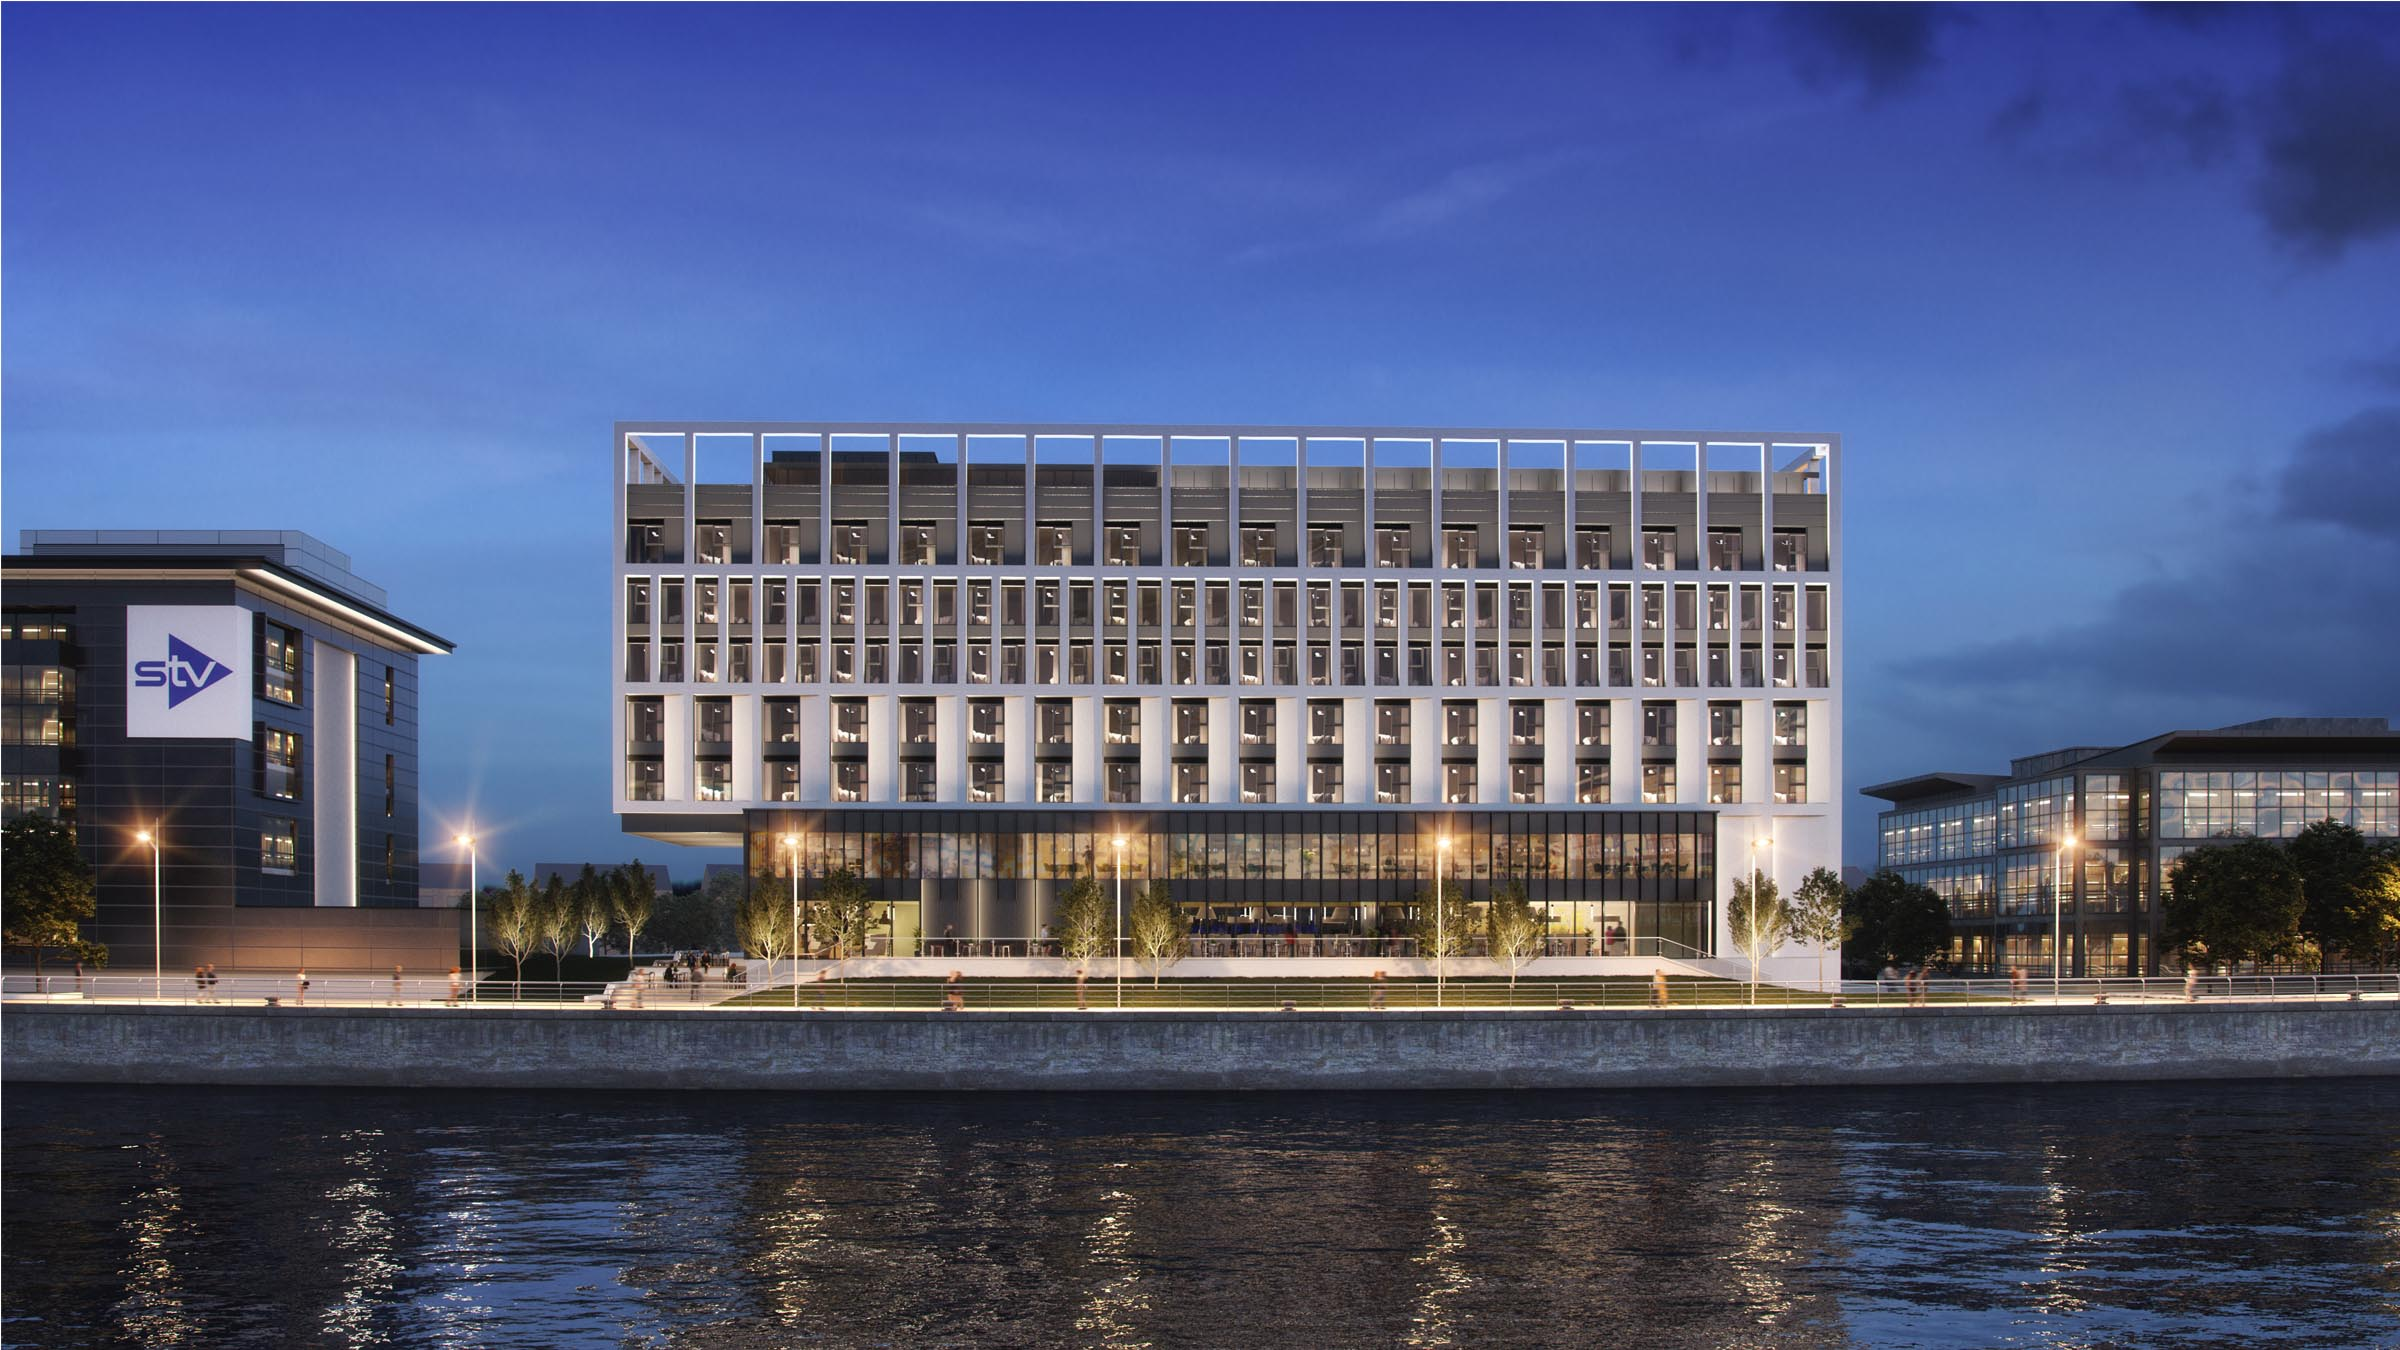 Planning approval for £18M Holiday Inn Pacific Quay hotel on former Glasgow Garden Festival site kickstarts Clyde Mission